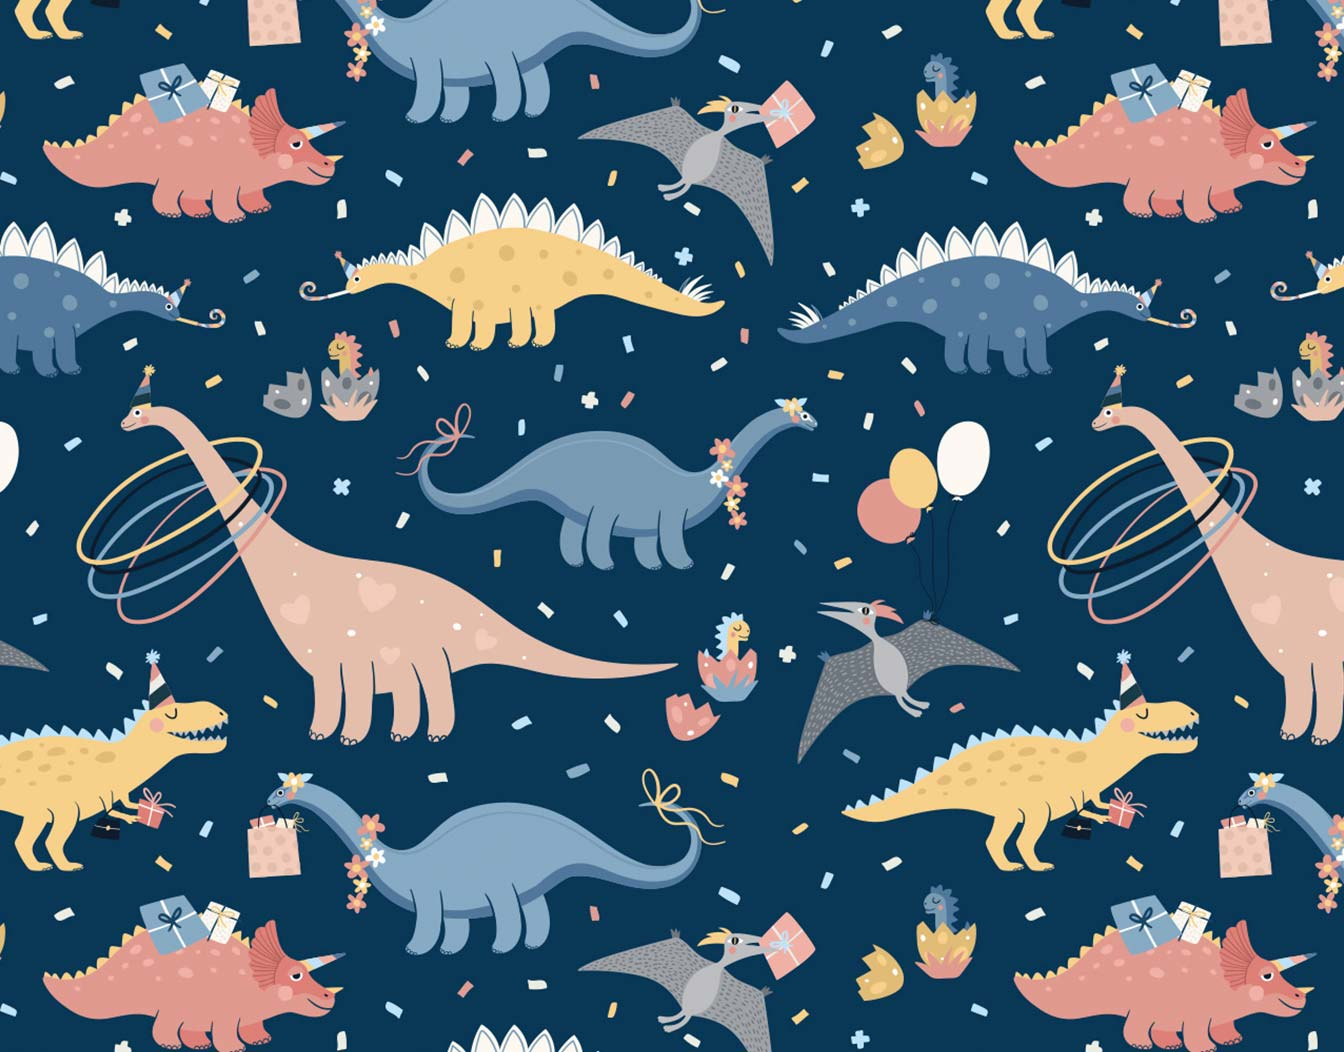 Dinosarious pattern for kids' birthday party.